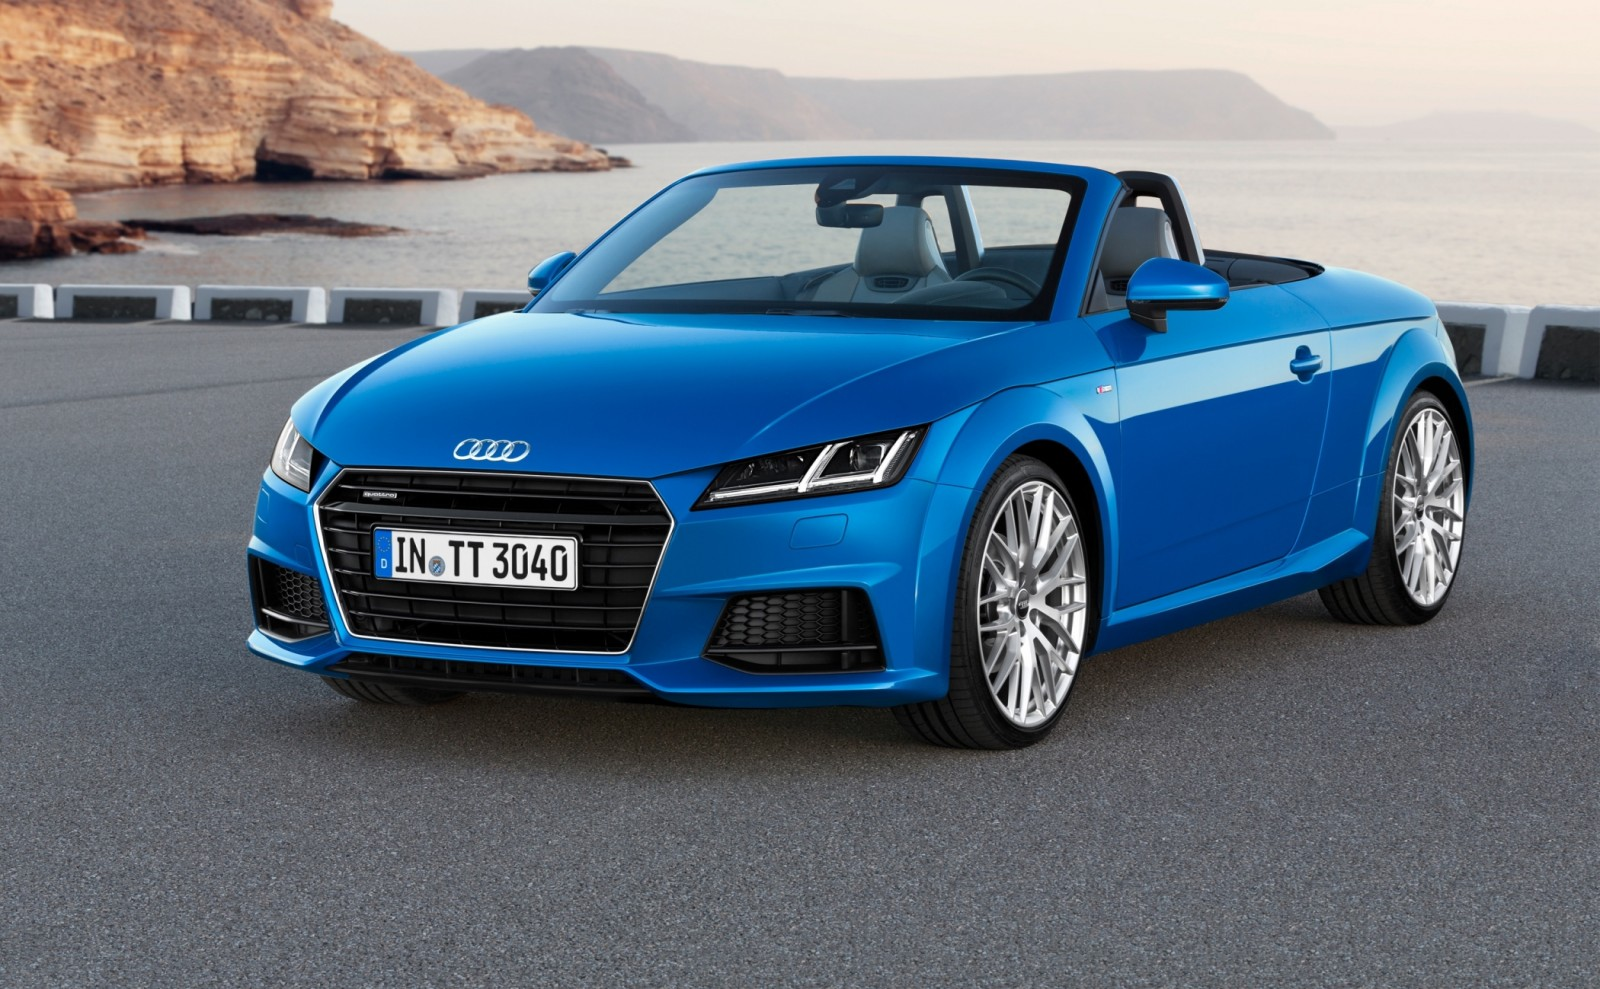 2015 Audi TT and TTS Roadster Revealed Before Paris Show 3